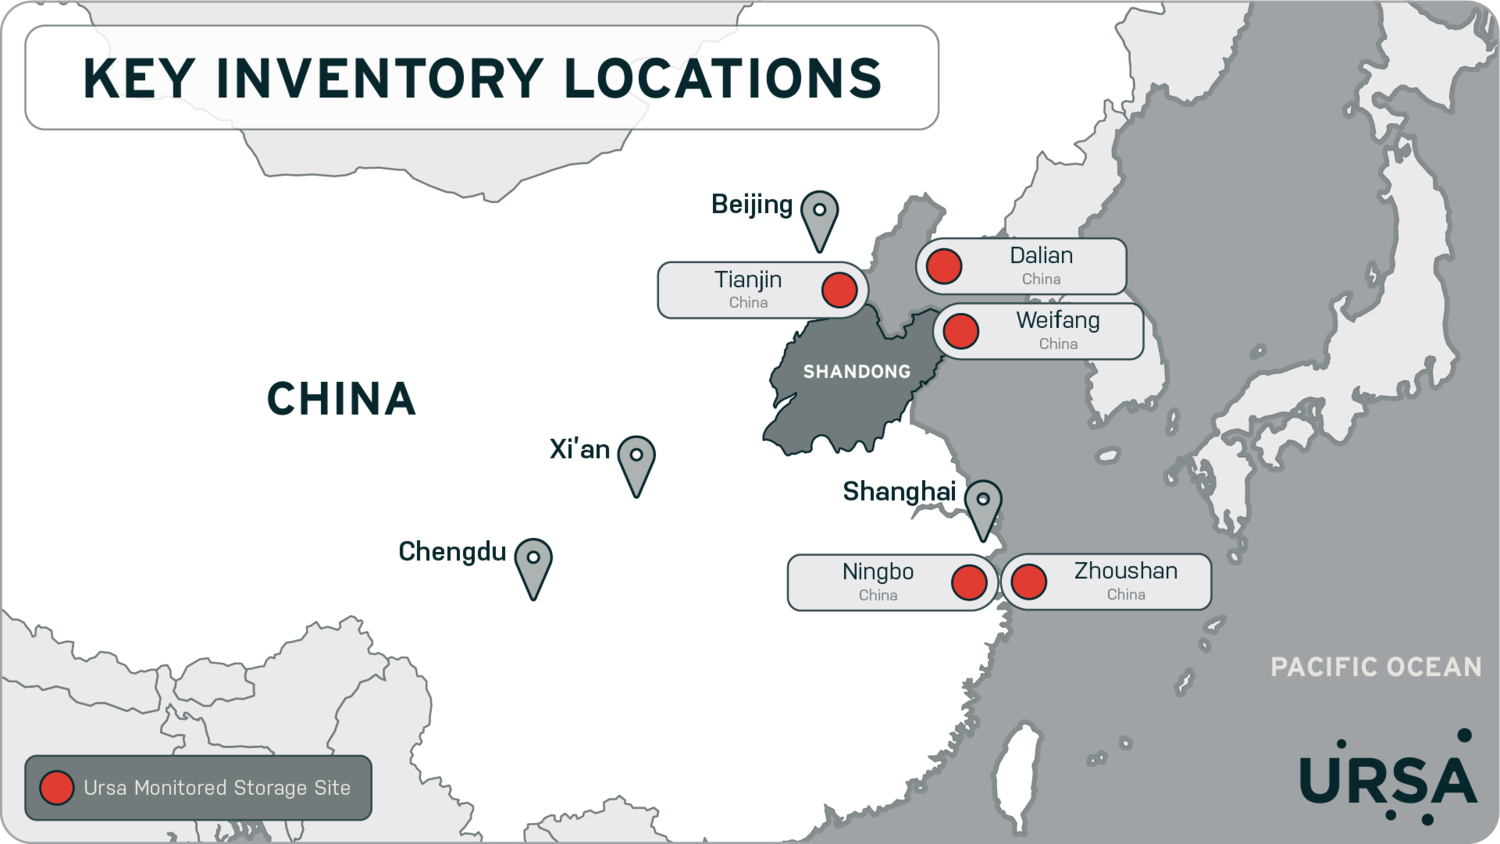 Key Inventory Locations_China with stroke.png